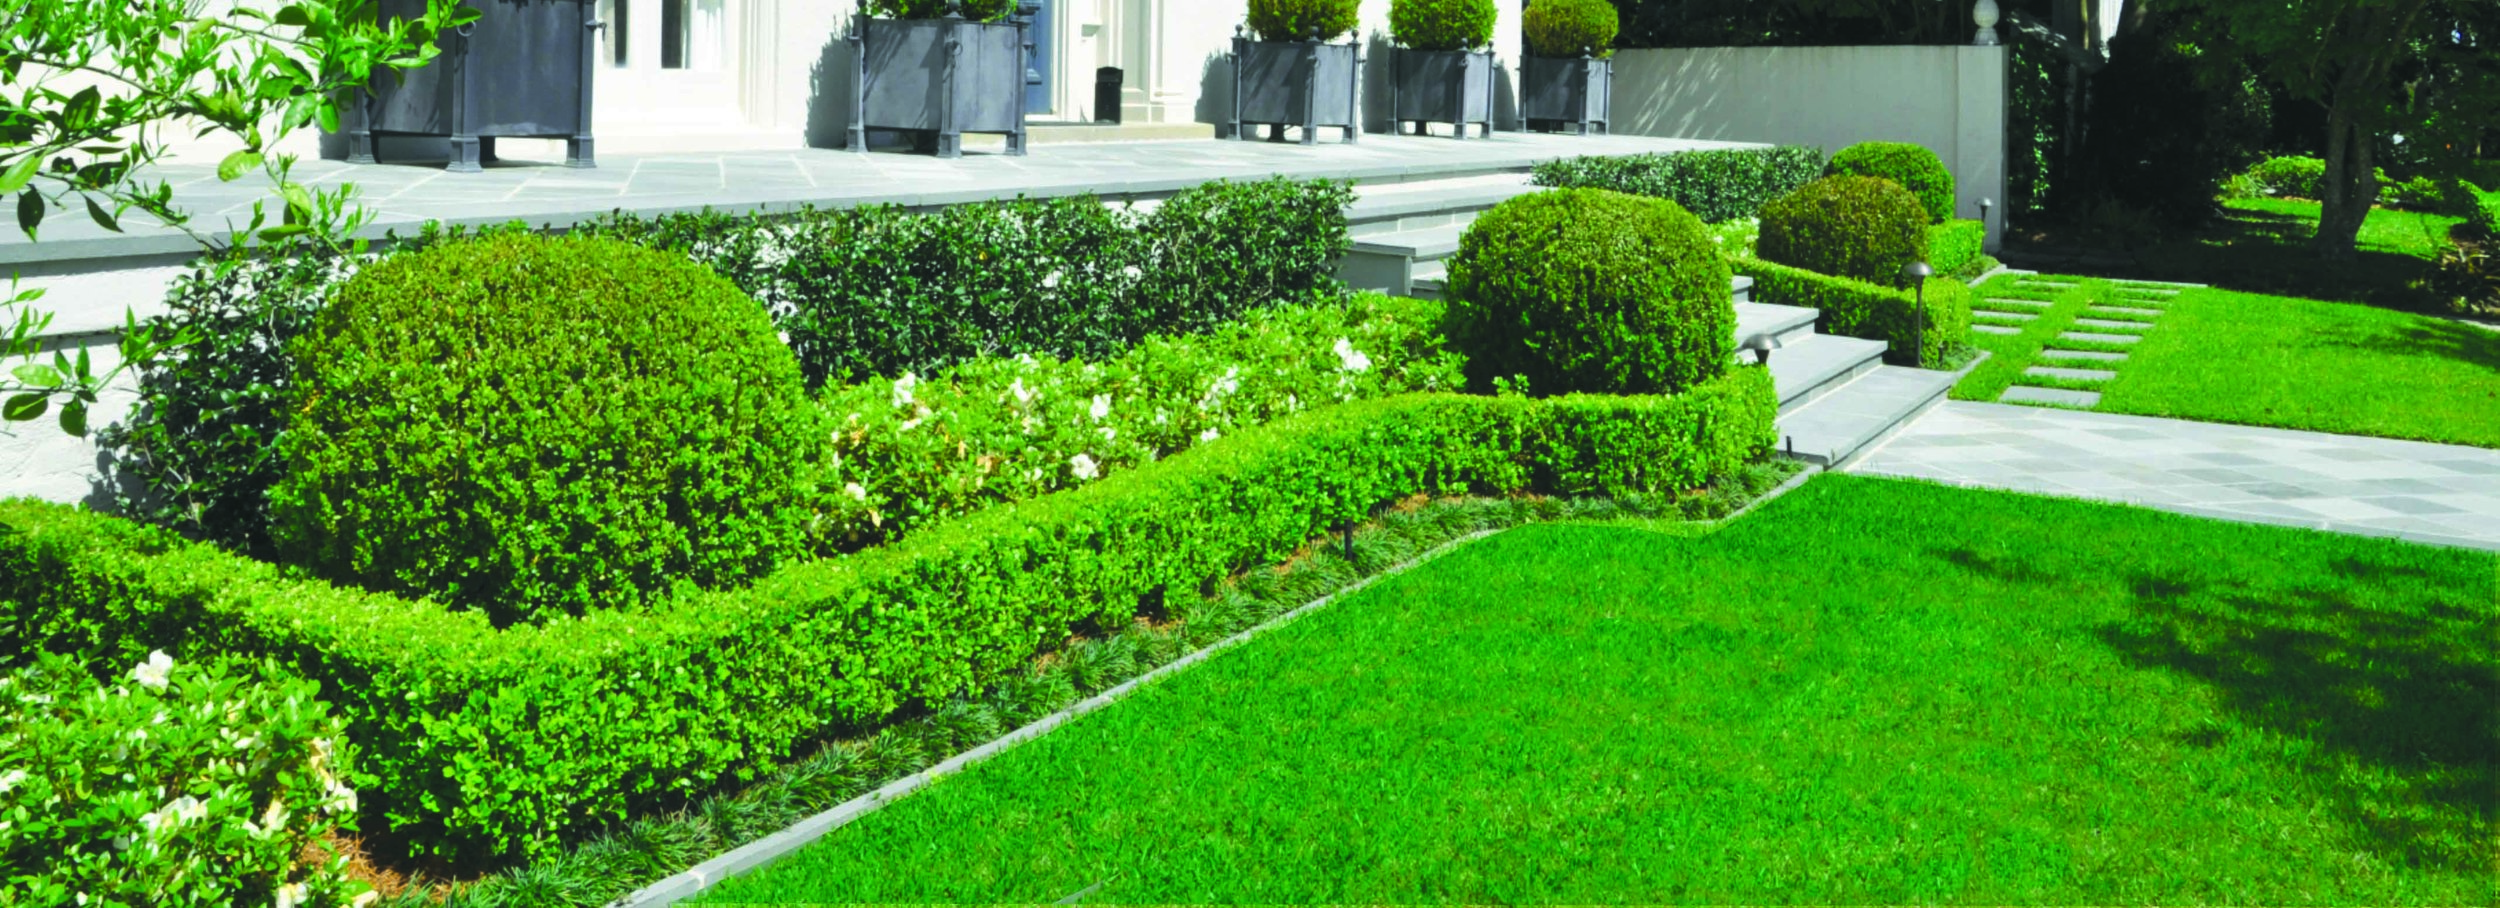 5 Tips for a beautiful lawn -